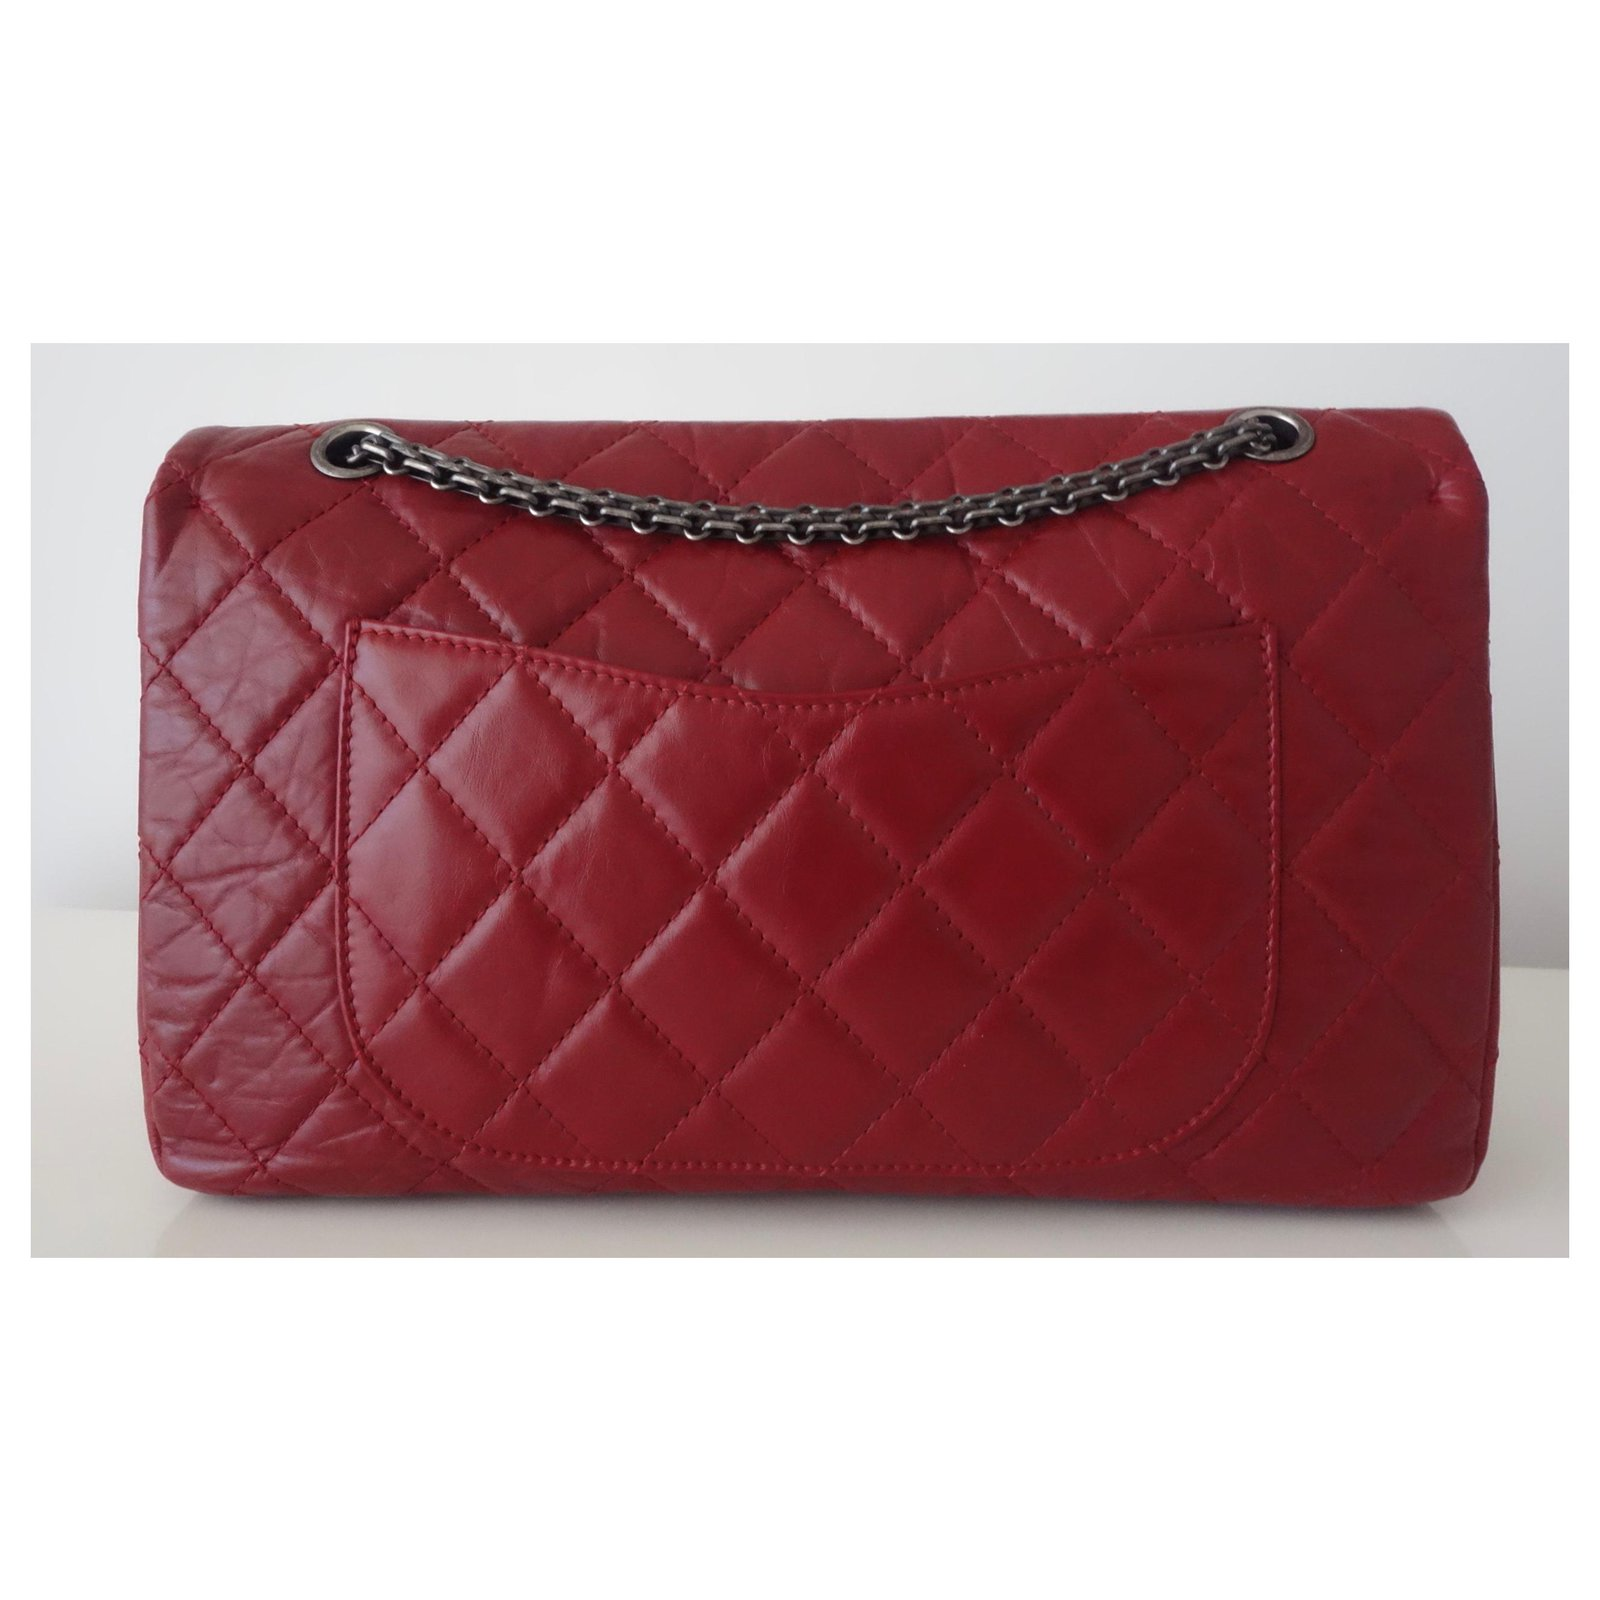 f86a393508f5 Chanel Chanel bag 2.55 RED JUMBO Handbags Leather Red ref.126048 - Joli  Closet